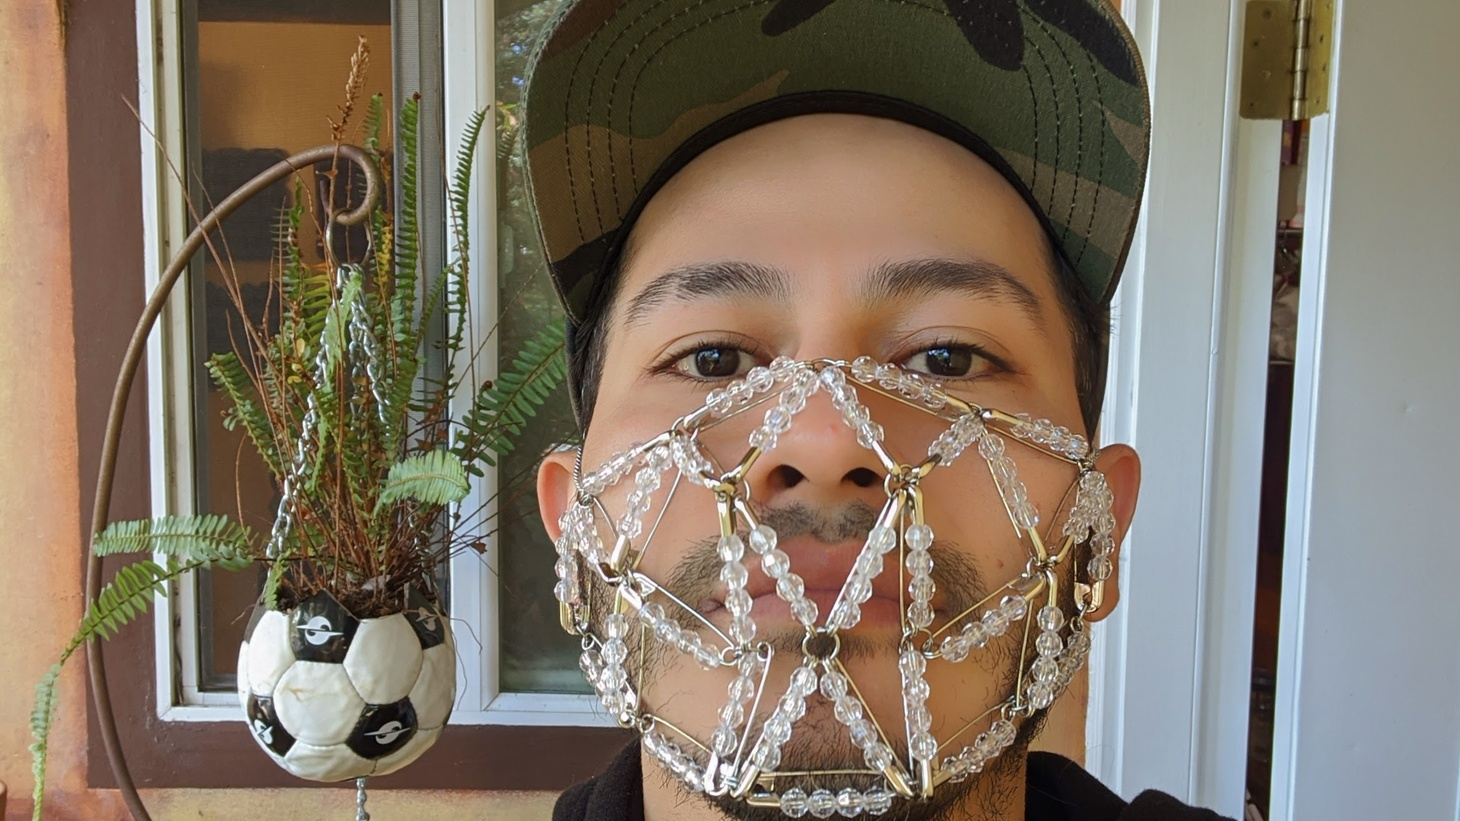 Fashion designer Rio Uribe wears the mask inspired by a dress from one of his collections.